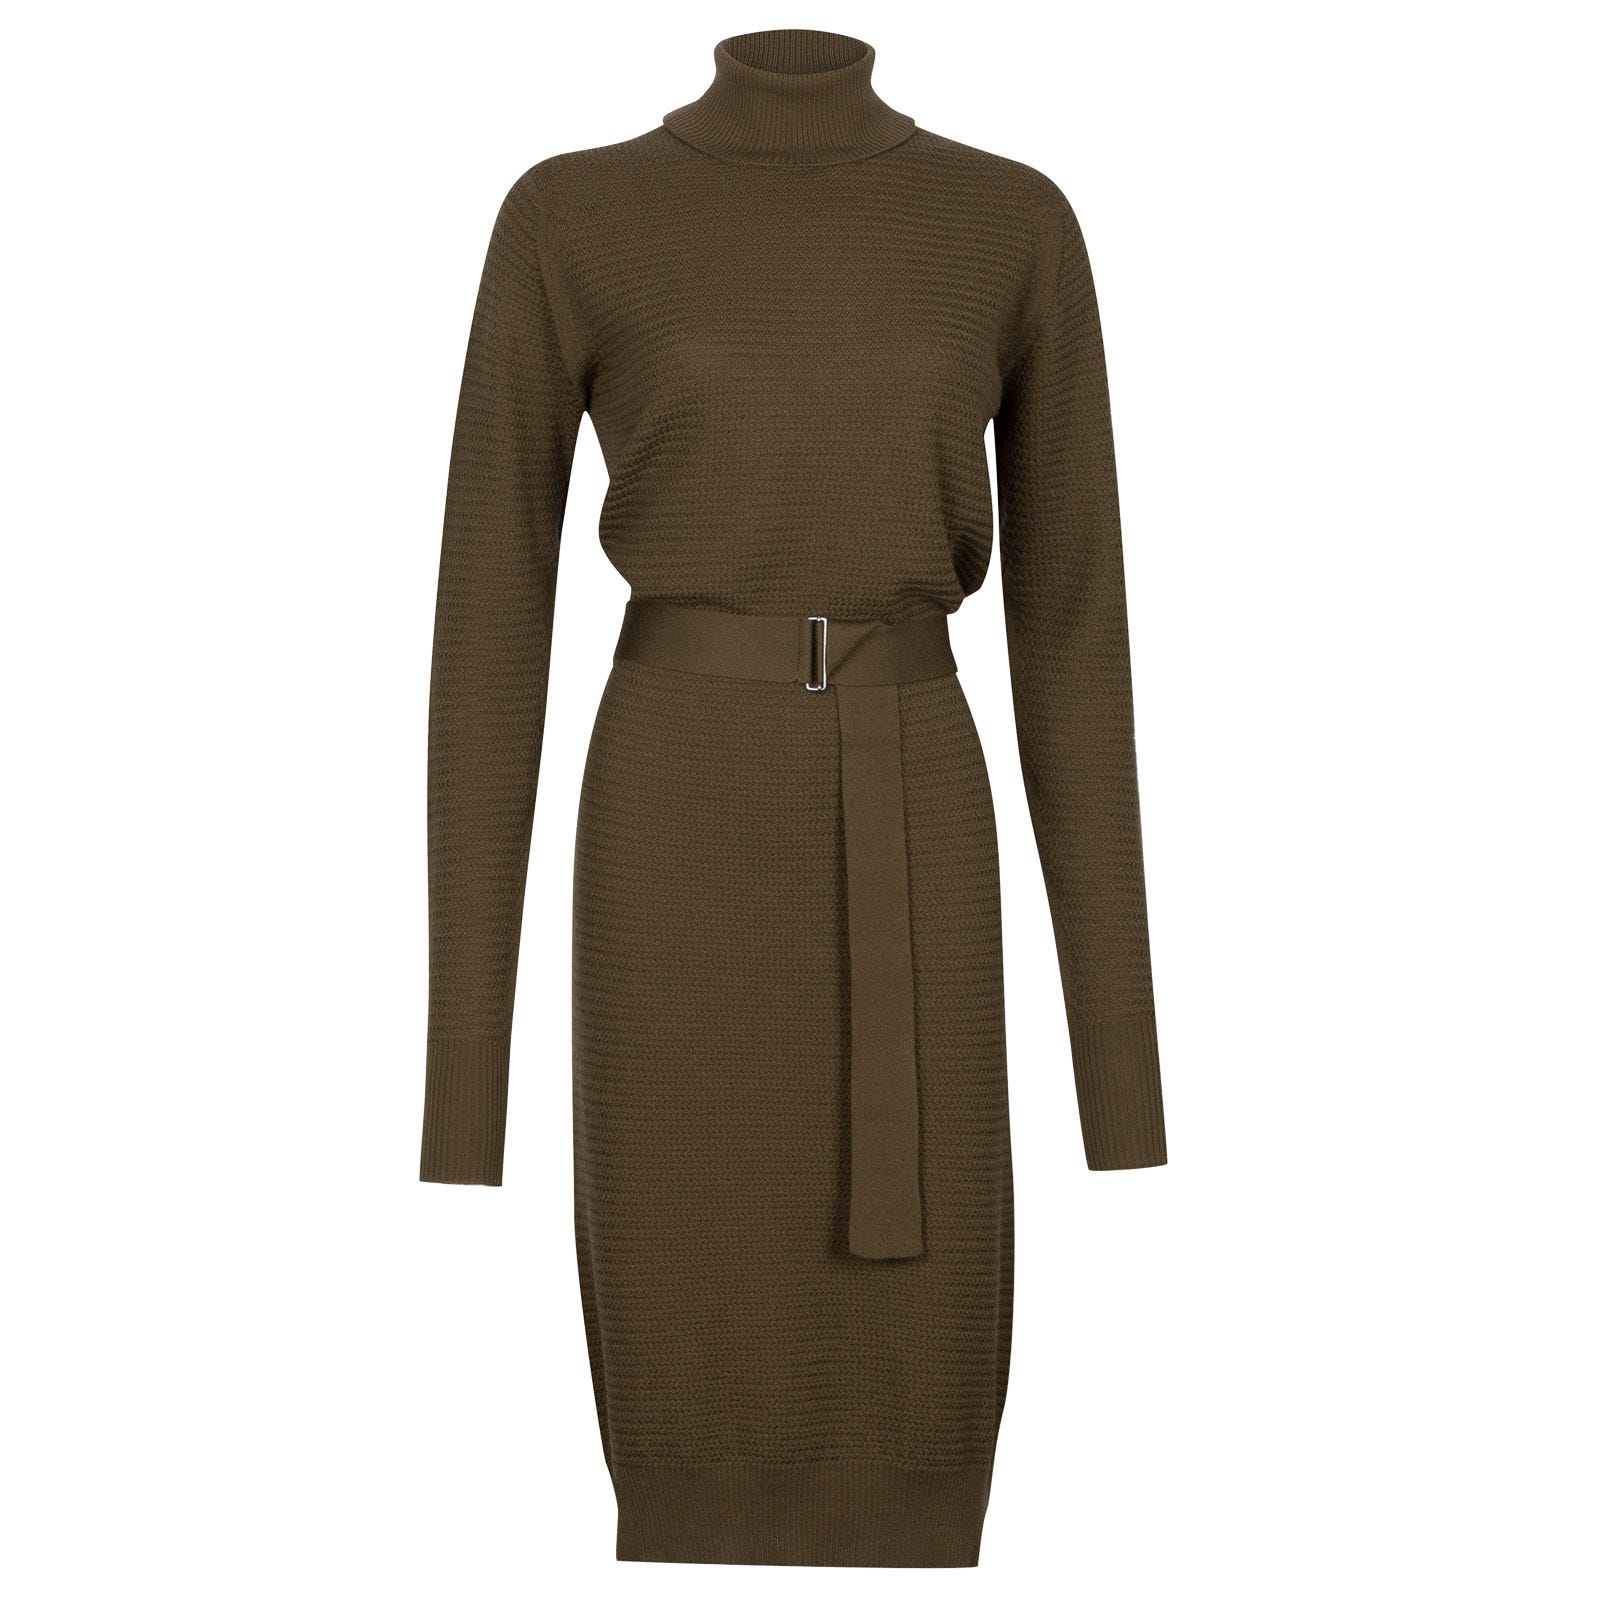 John Smedley poplar Merino Wool Dress in Kielder Green-S